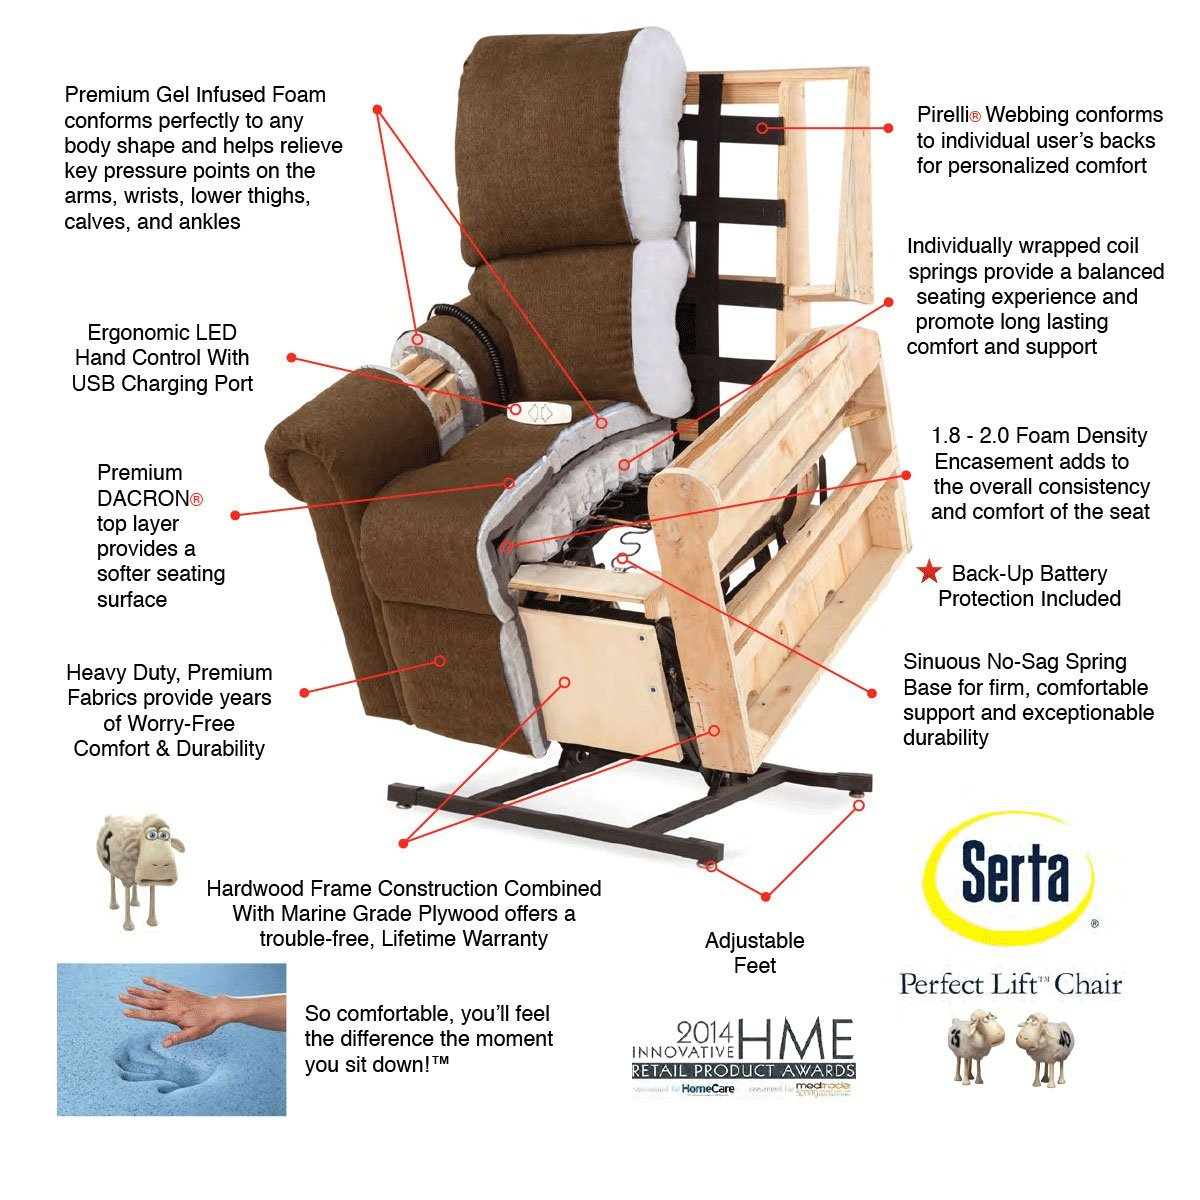 Serta Perfect Lift Chair Plush Comfort Recliner w/ Gel-Infused Foam Relieves Key Body Pressure Points  sc 1 st  The Best Recliner & The Best Recliners For Bad Backs And Lumbar Support - The Best ... islam-shia.org